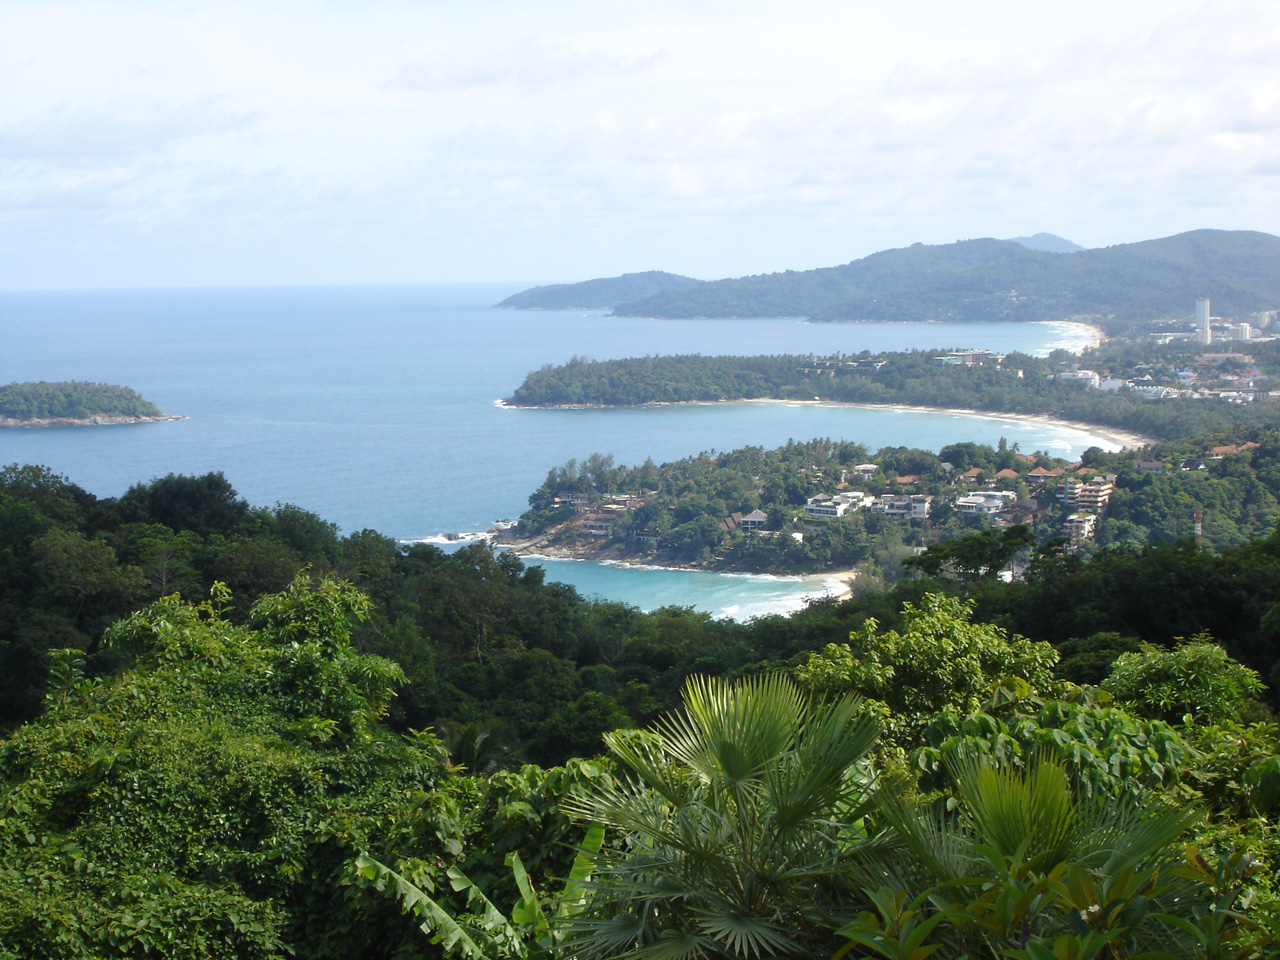 Karon View Point Phuket Location Map,Location Map of Karon View Point Phuket,Karon View Point Phuket accommodation destinations attractions hotels resorts villas map reviews photos pictures,The Karon Kata Viewpoint map,how to get to kata viewpoint address